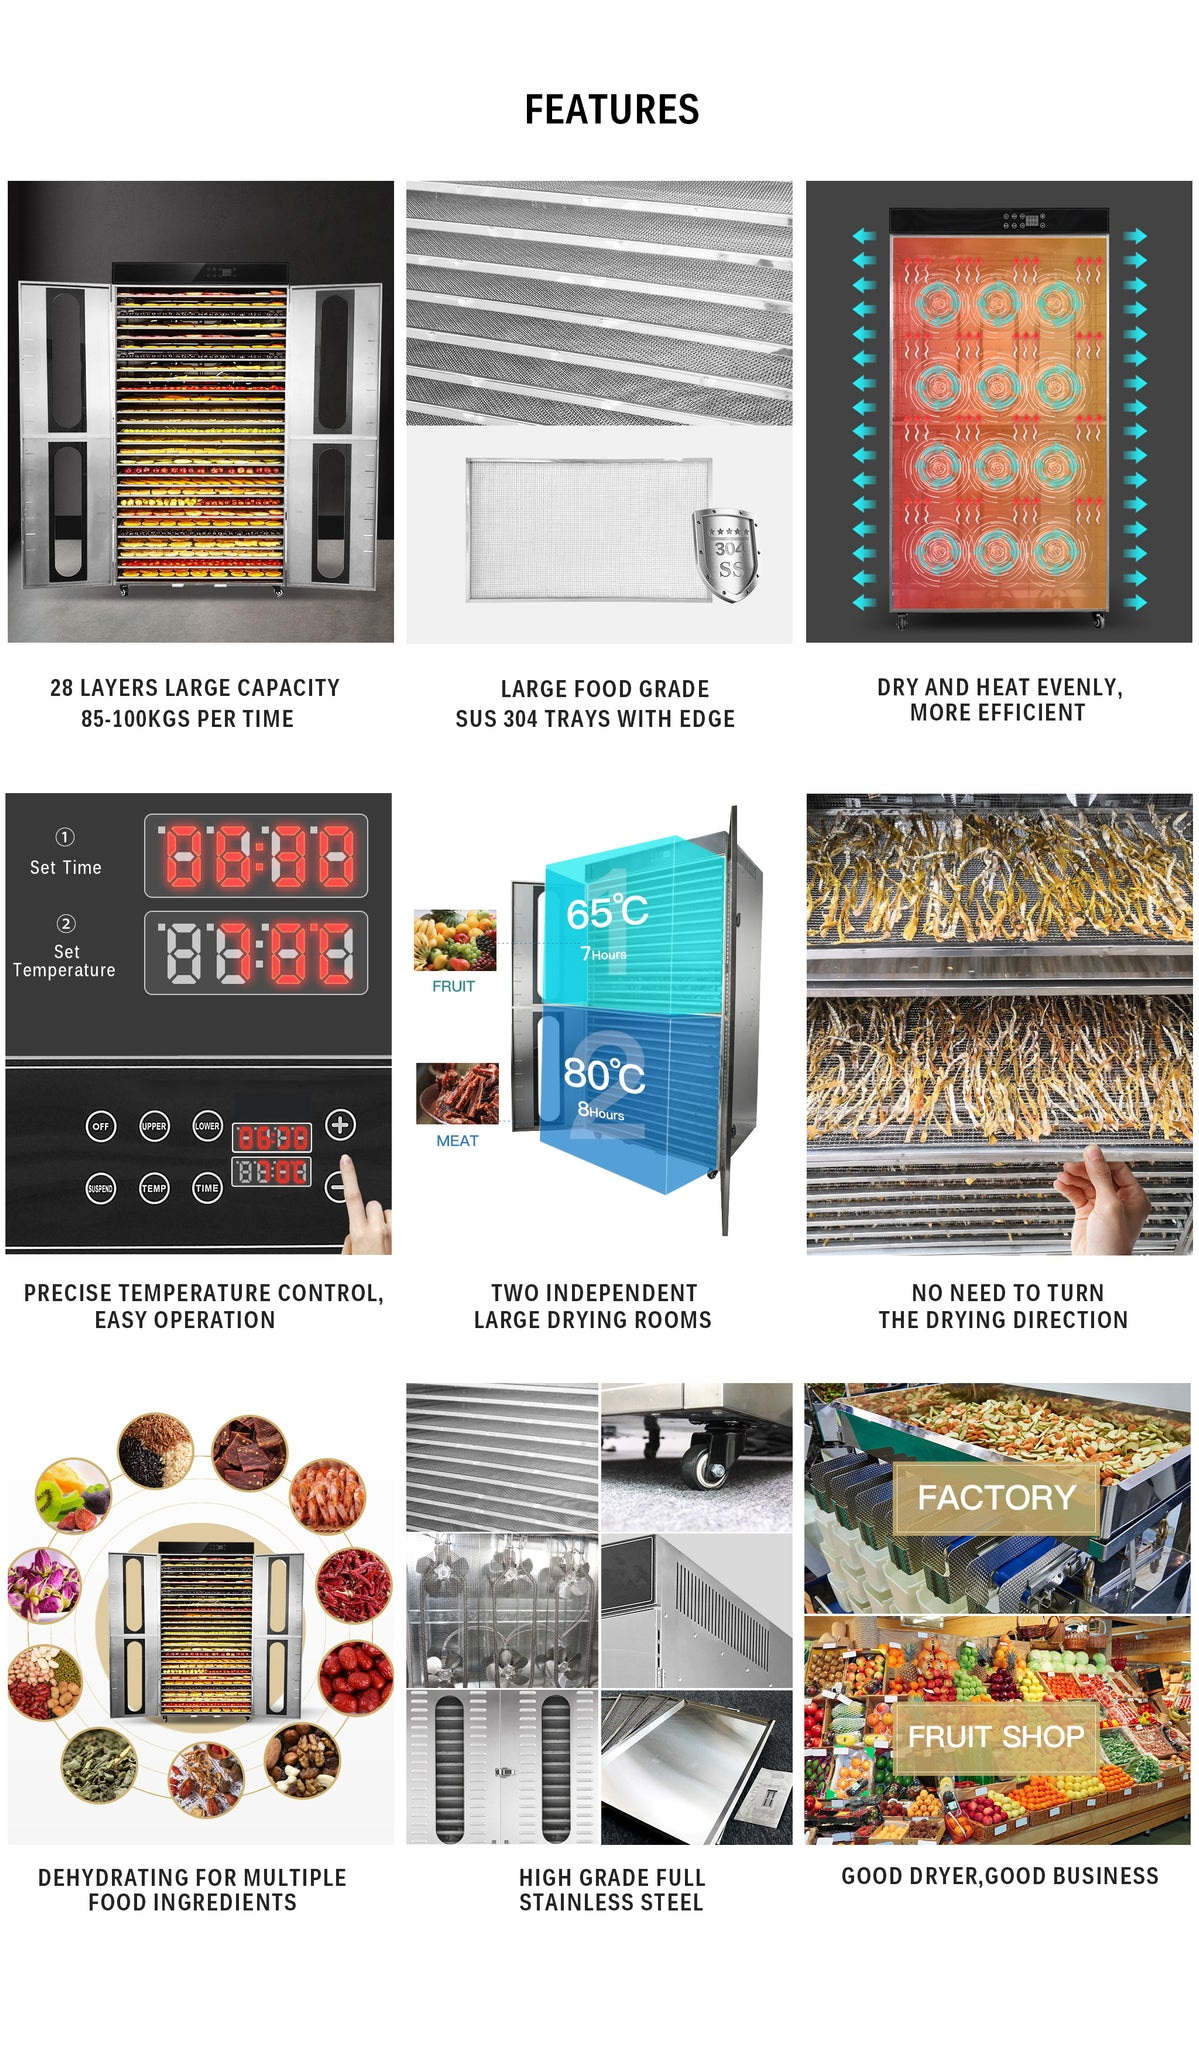 28 Layers Industrial Food Dehydrator -127.97 sq.ft Drying Area | Two Large Independent Drying Rooms | Digital Adjustable Timer | Temperature Control | Dryer for Jerky, Herb, Meat, Beef, Fruit and Vegetables